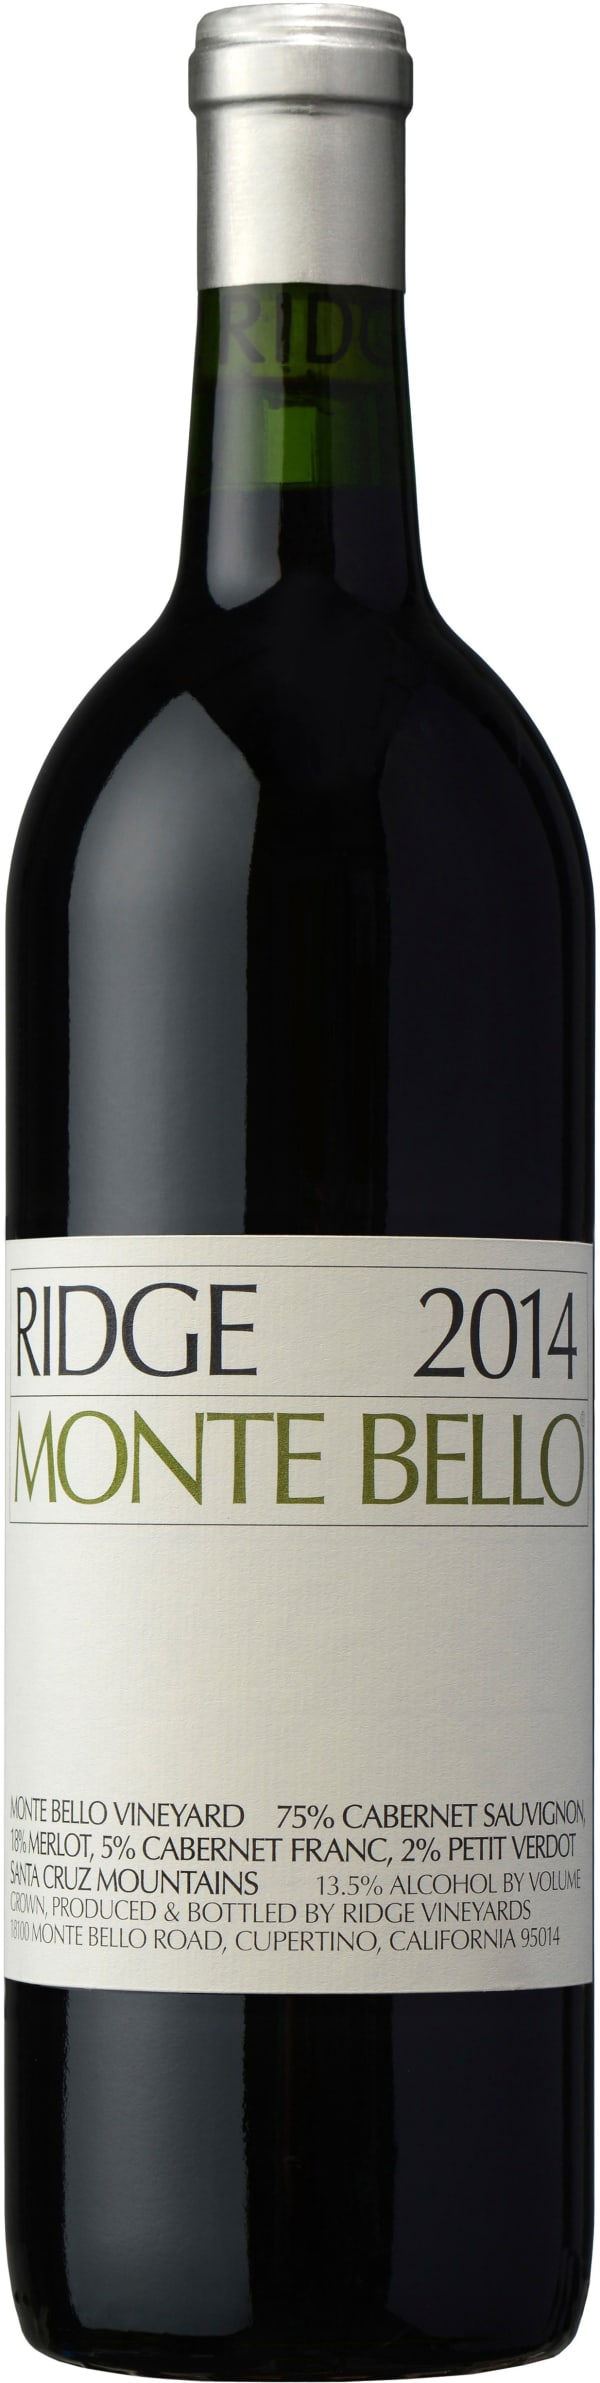 Ridge Monte Bello 2015